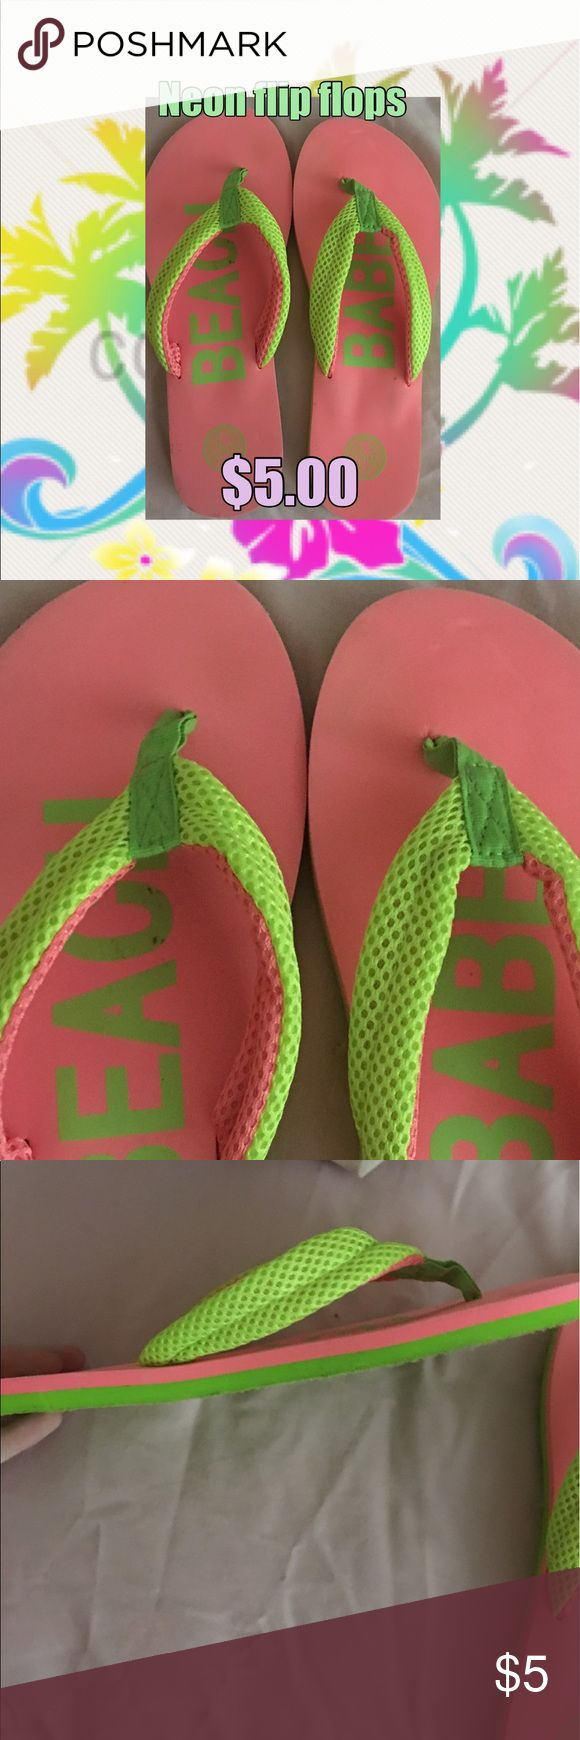 Neon pink and green flip flops Nice thick style neon green and pink flip flops the thong part of the flip flops are made of a mesh material and 1/4 inch lift to them. Worn 2 times super comfy! SO BEACH Shoes Sandals